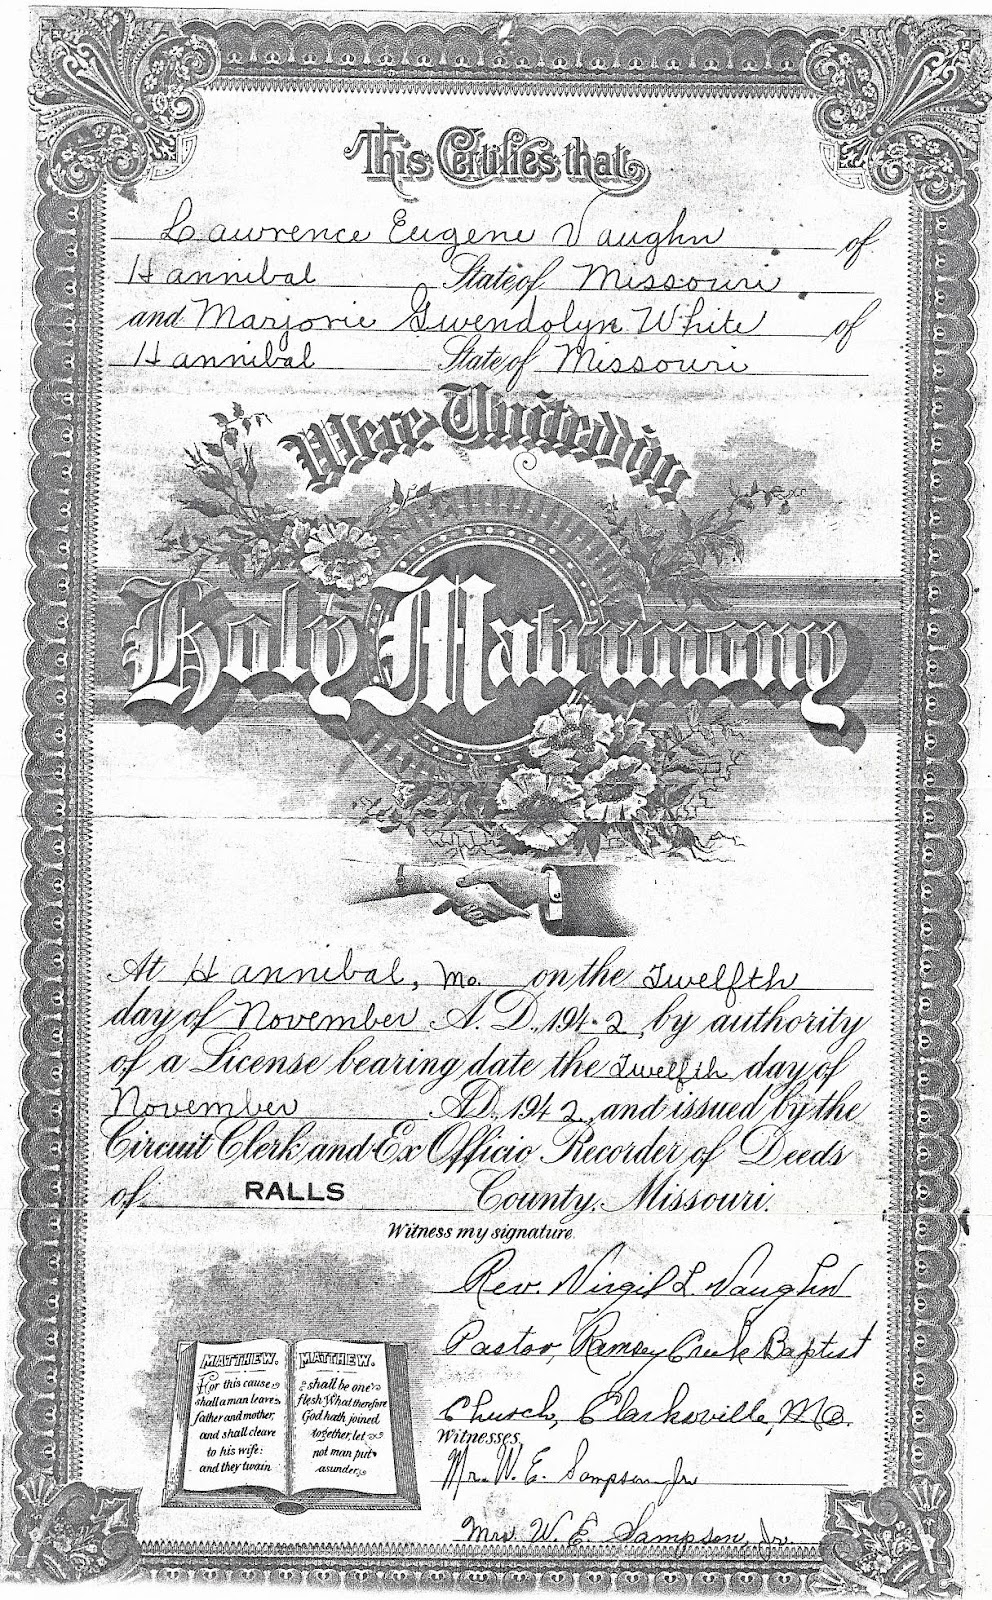 Eugene and Marjorie Vaughn Marriage License.jpg